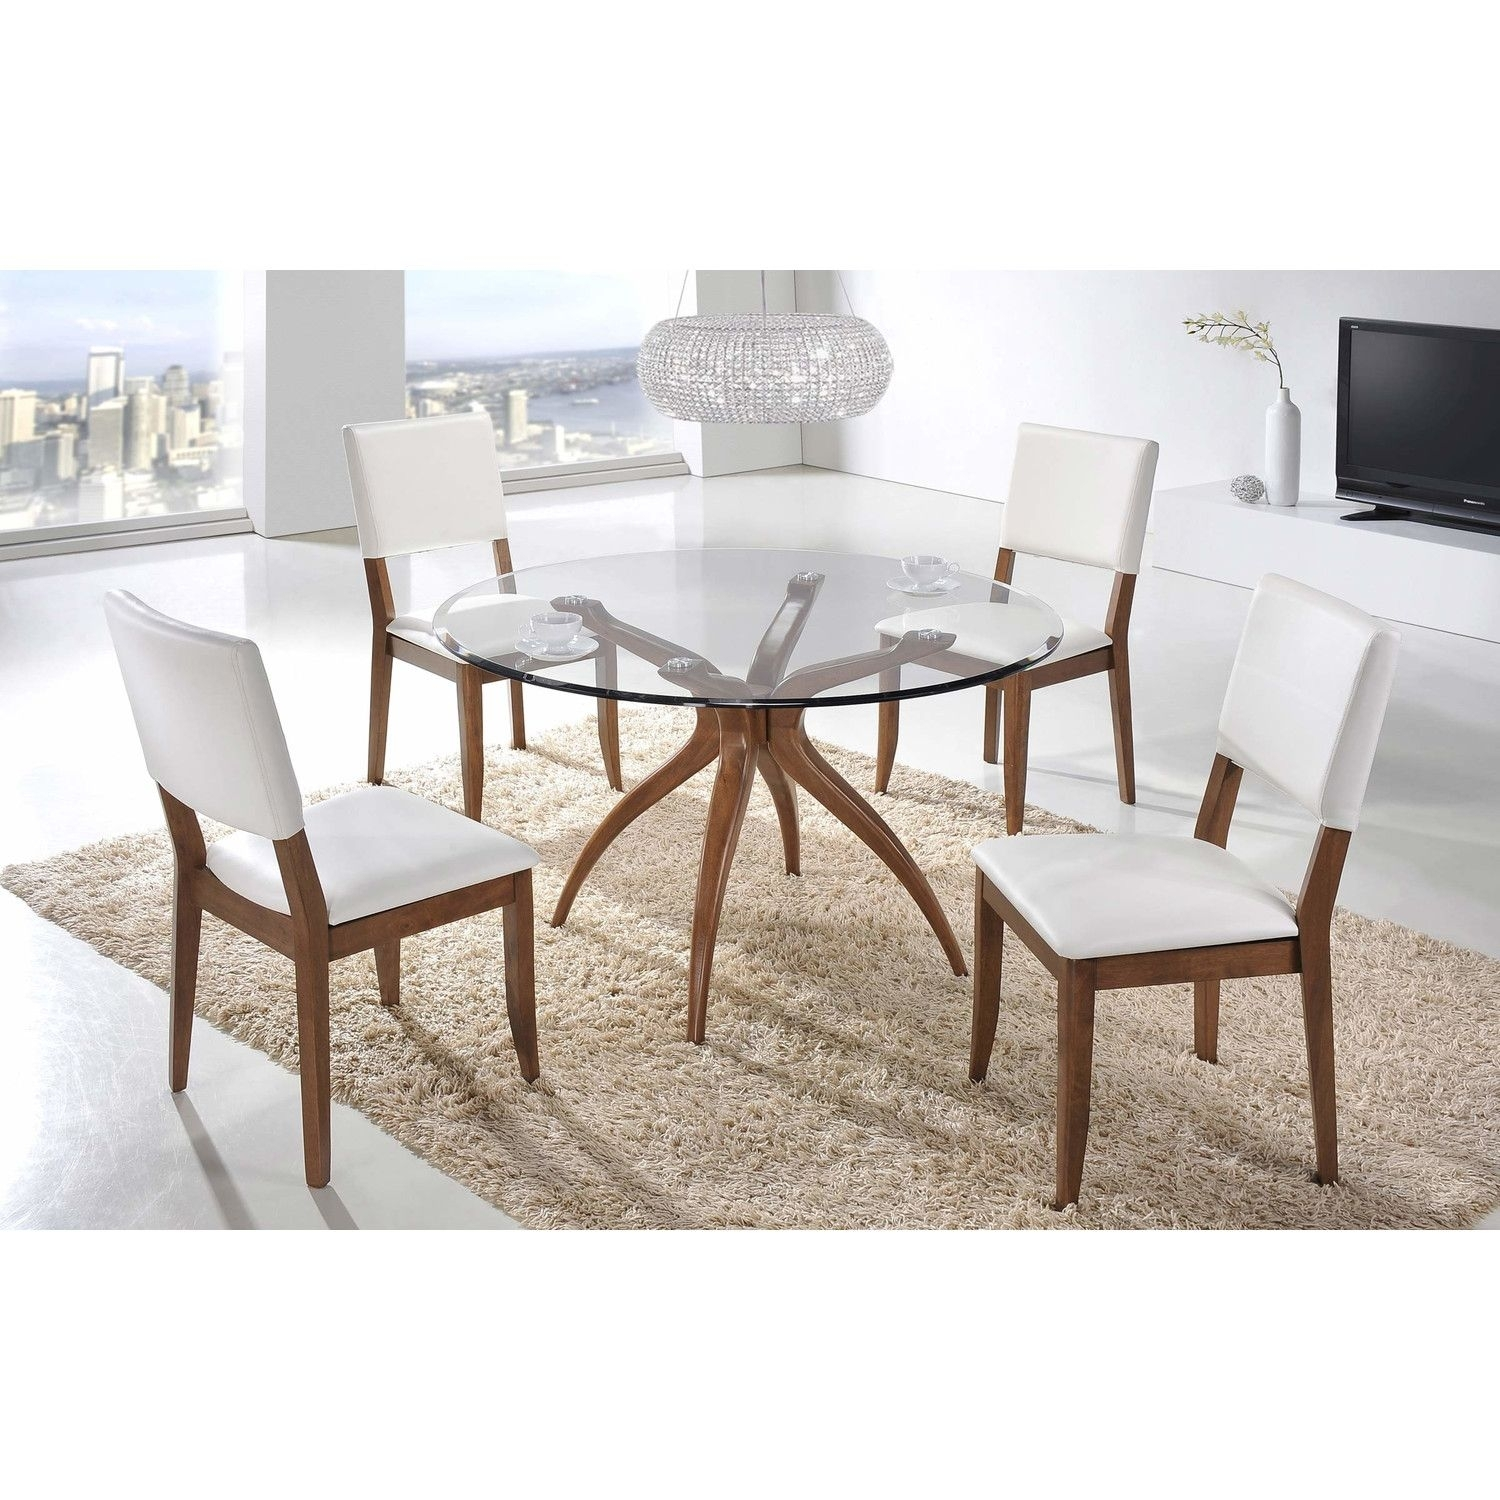 Mercury Row Dining Table | Office Project | Pinterest | Dining Inside Best And Newest Grady Round Dining Tables (View 7 of 20)